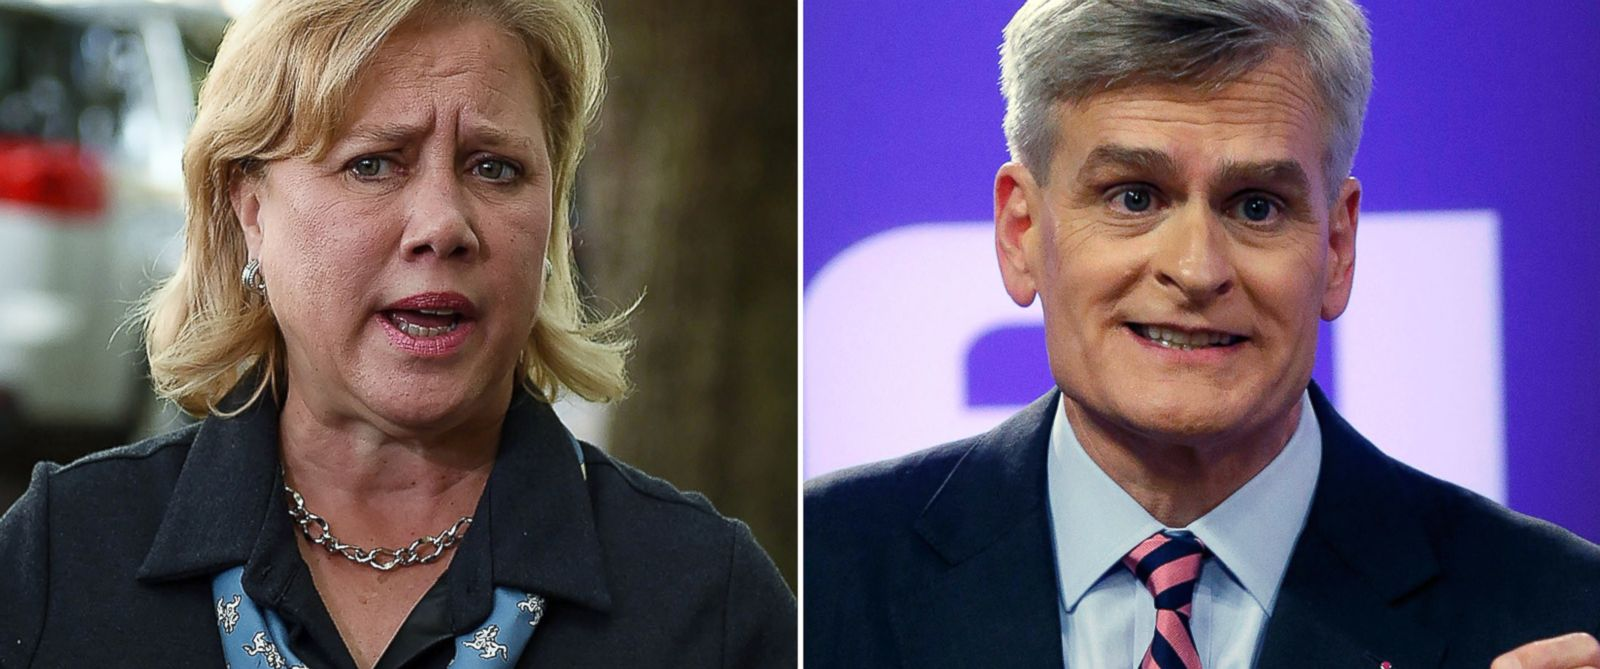 PHOTO: Mary Landrieu speaks with the media on Nov. 4, 2014 in New Orleans, La. and Bill Cassidy is seen during a debate with Landrieu on Oct. 29, 2014.